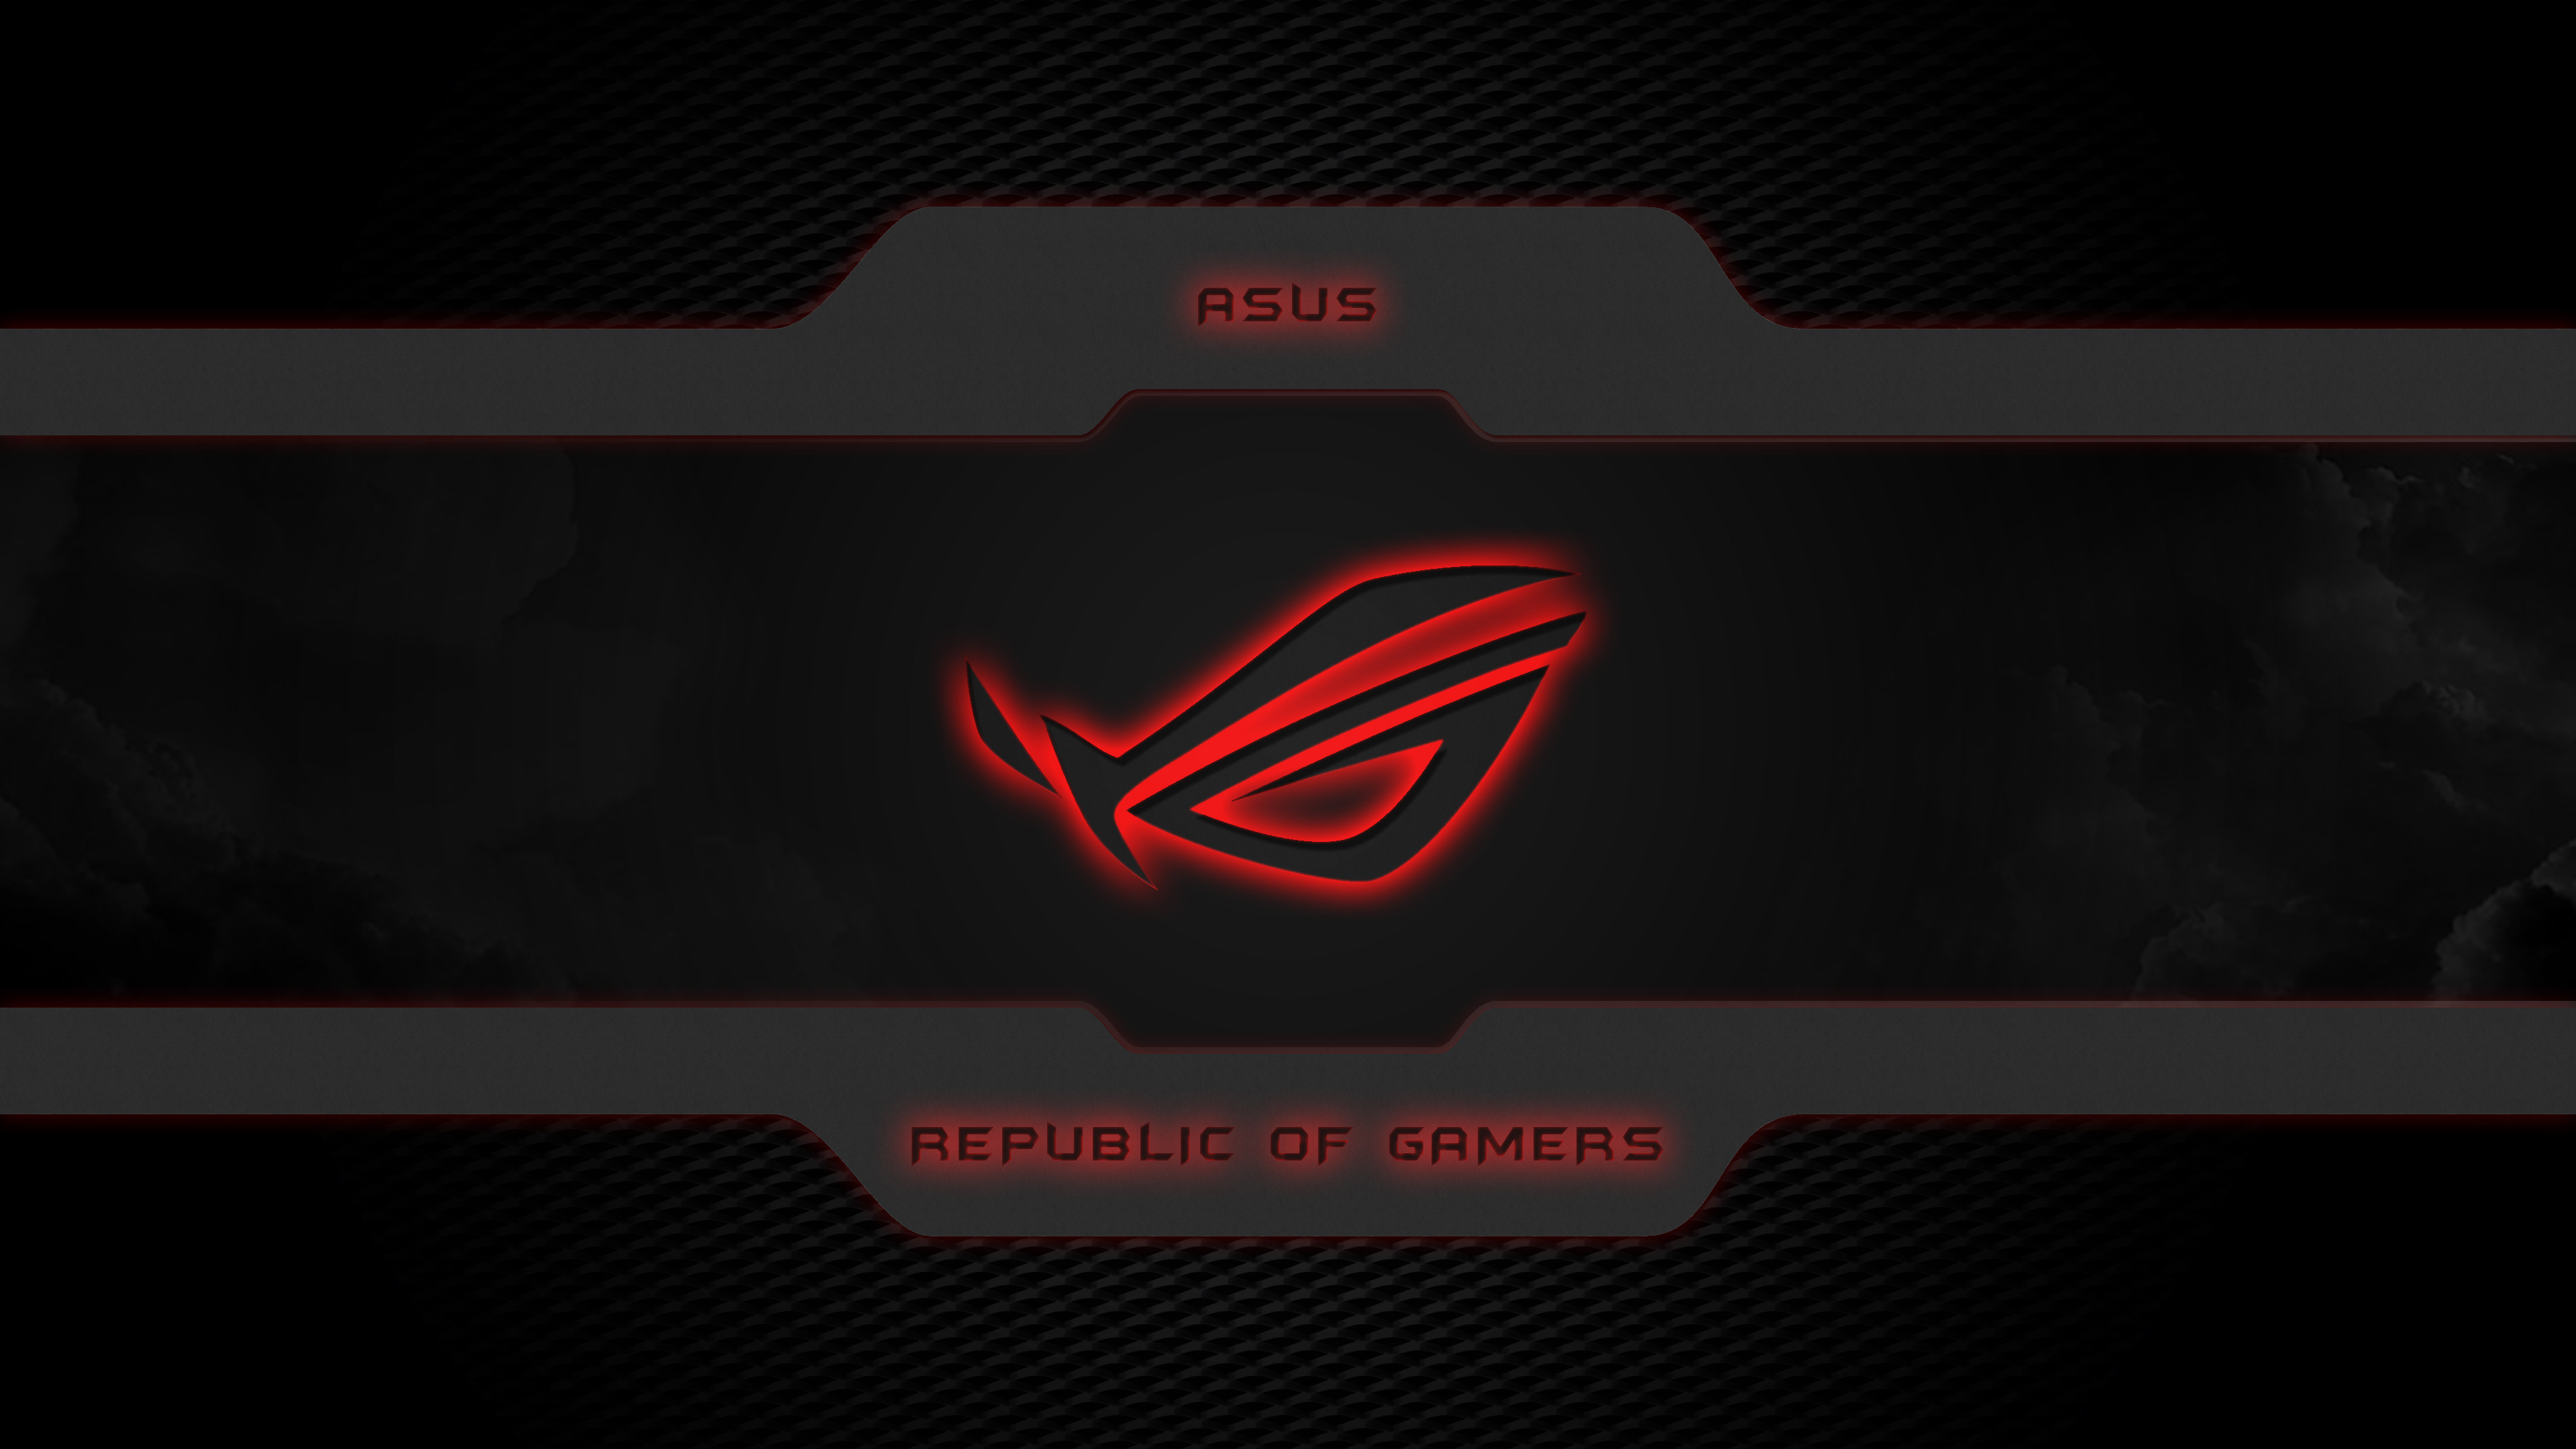 3840x2160 Asus Rog Wallpaper 38 Wallpapers ID36KO